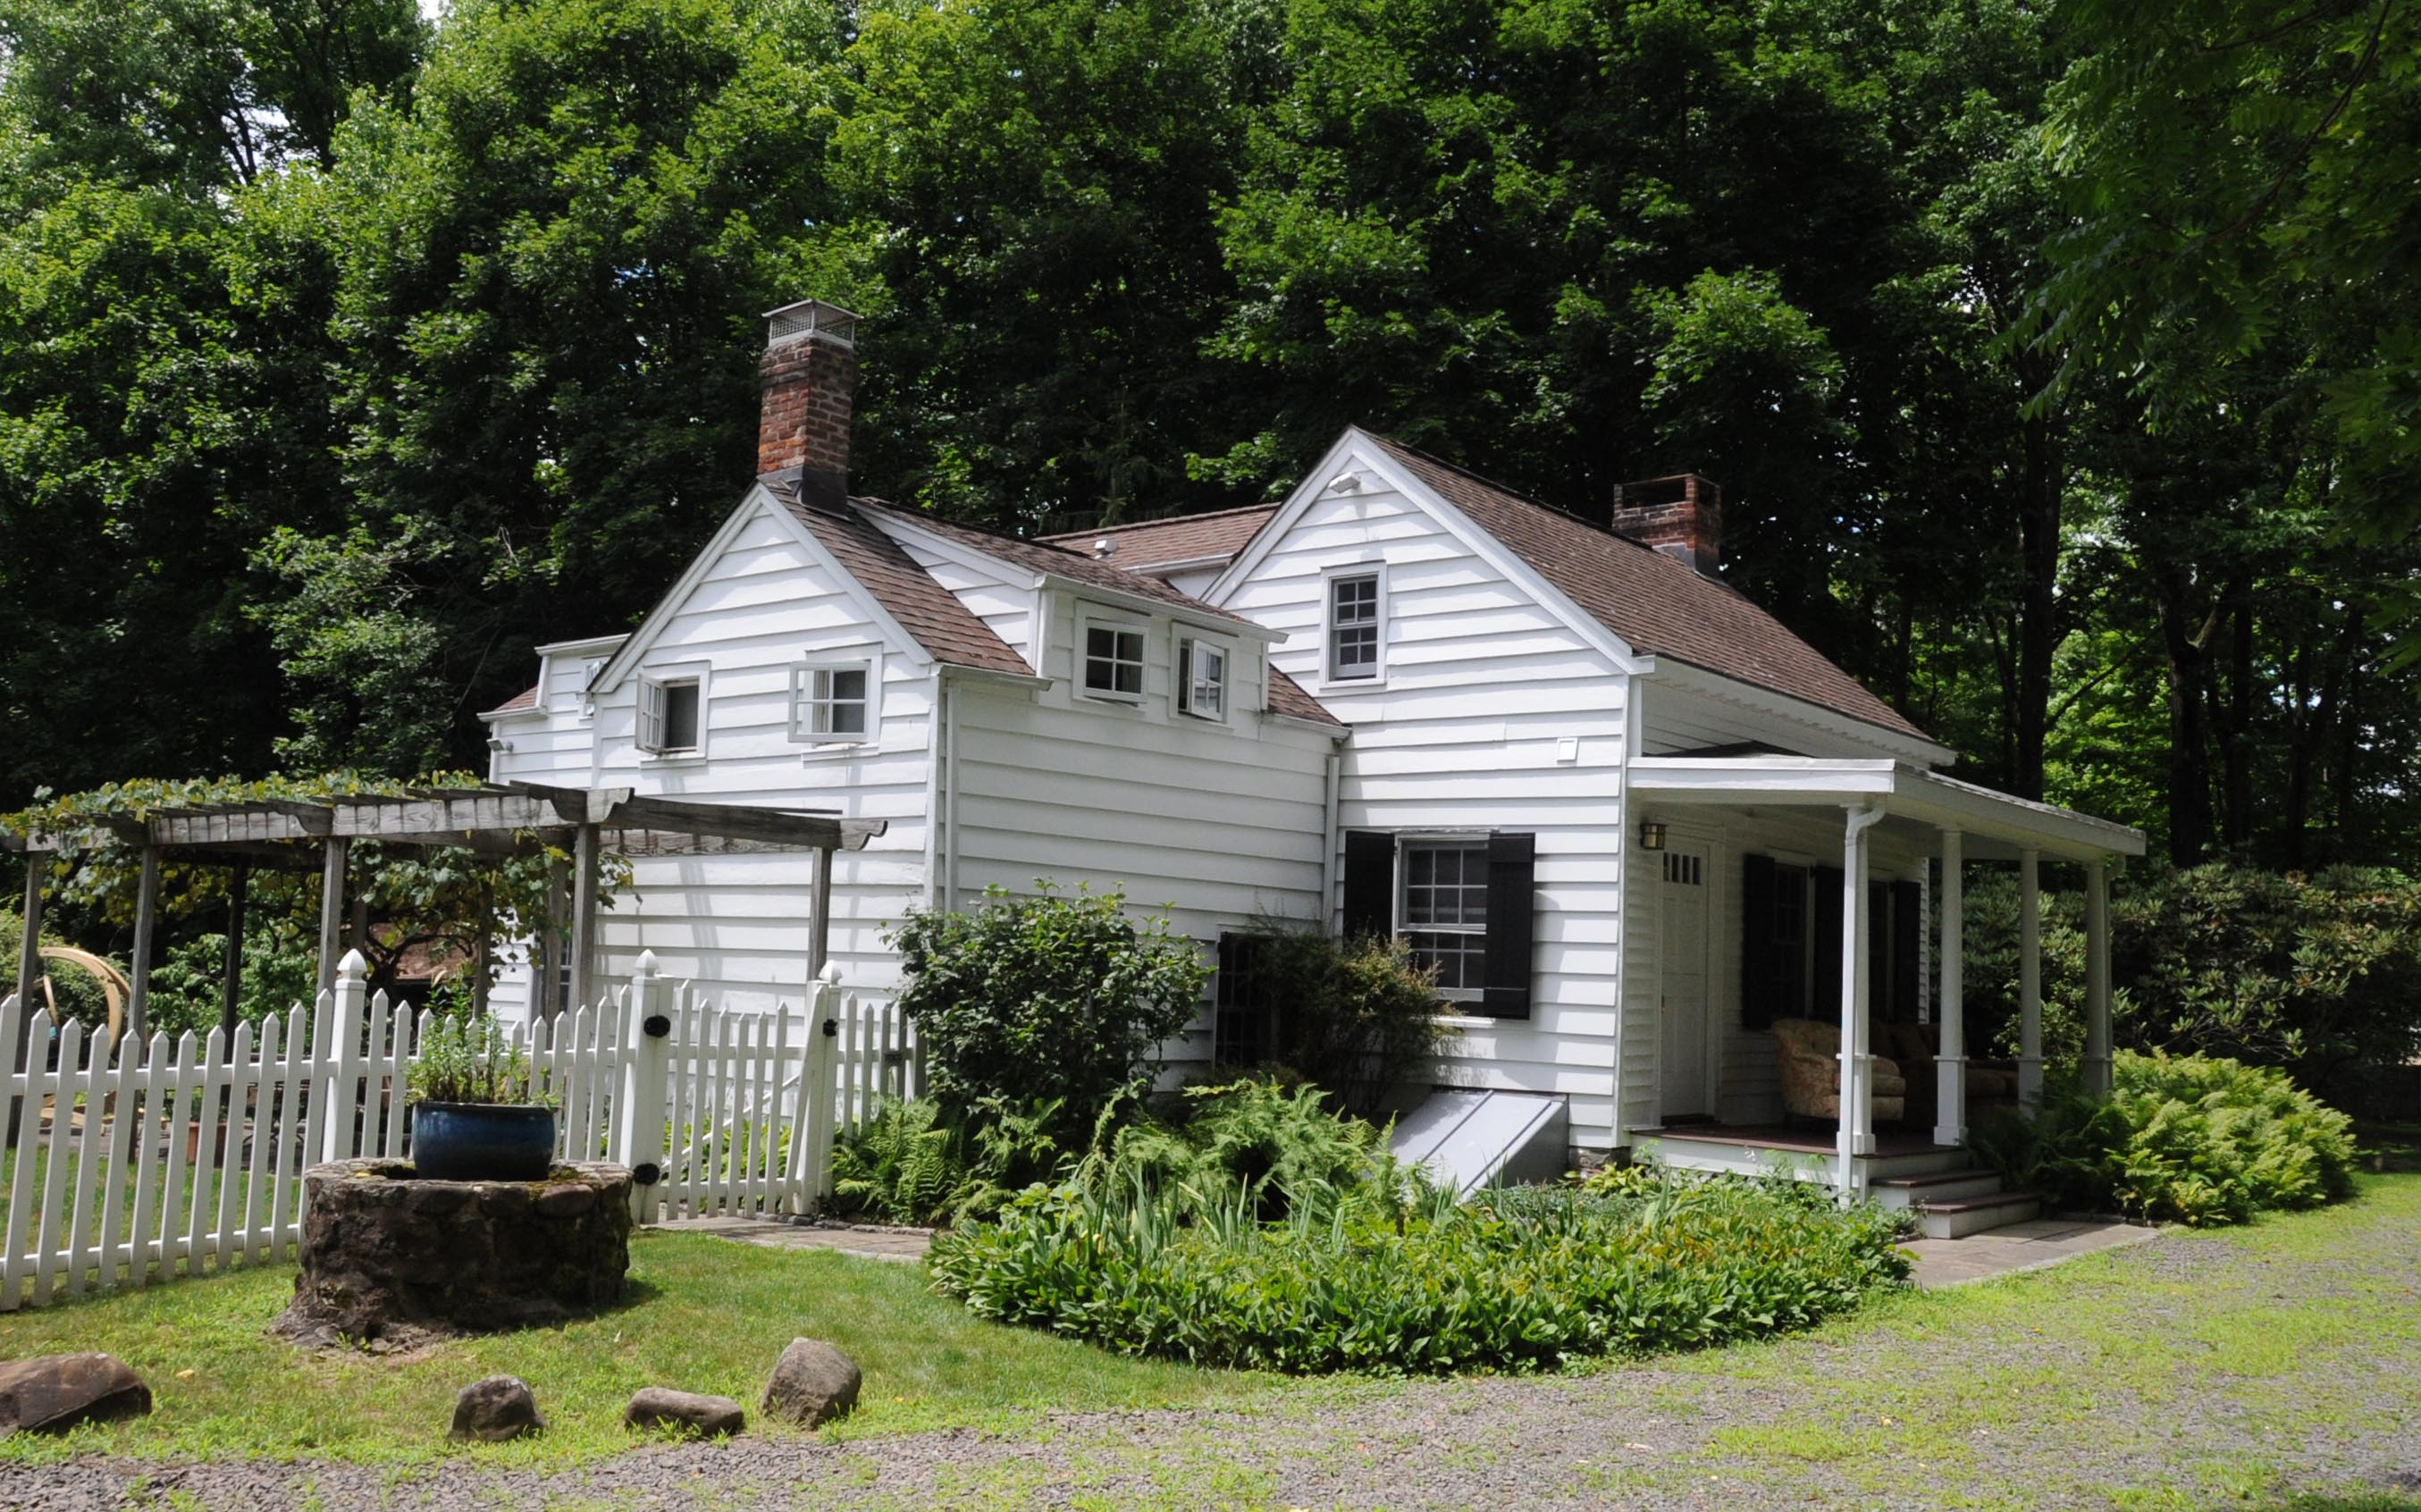 https://upload.wikimedia.org/wikipedia/commons/2/23/LITTLE_HOUSE%2C_PALISADES%2C_ROCKLAND_COUNTY_NY.jpg